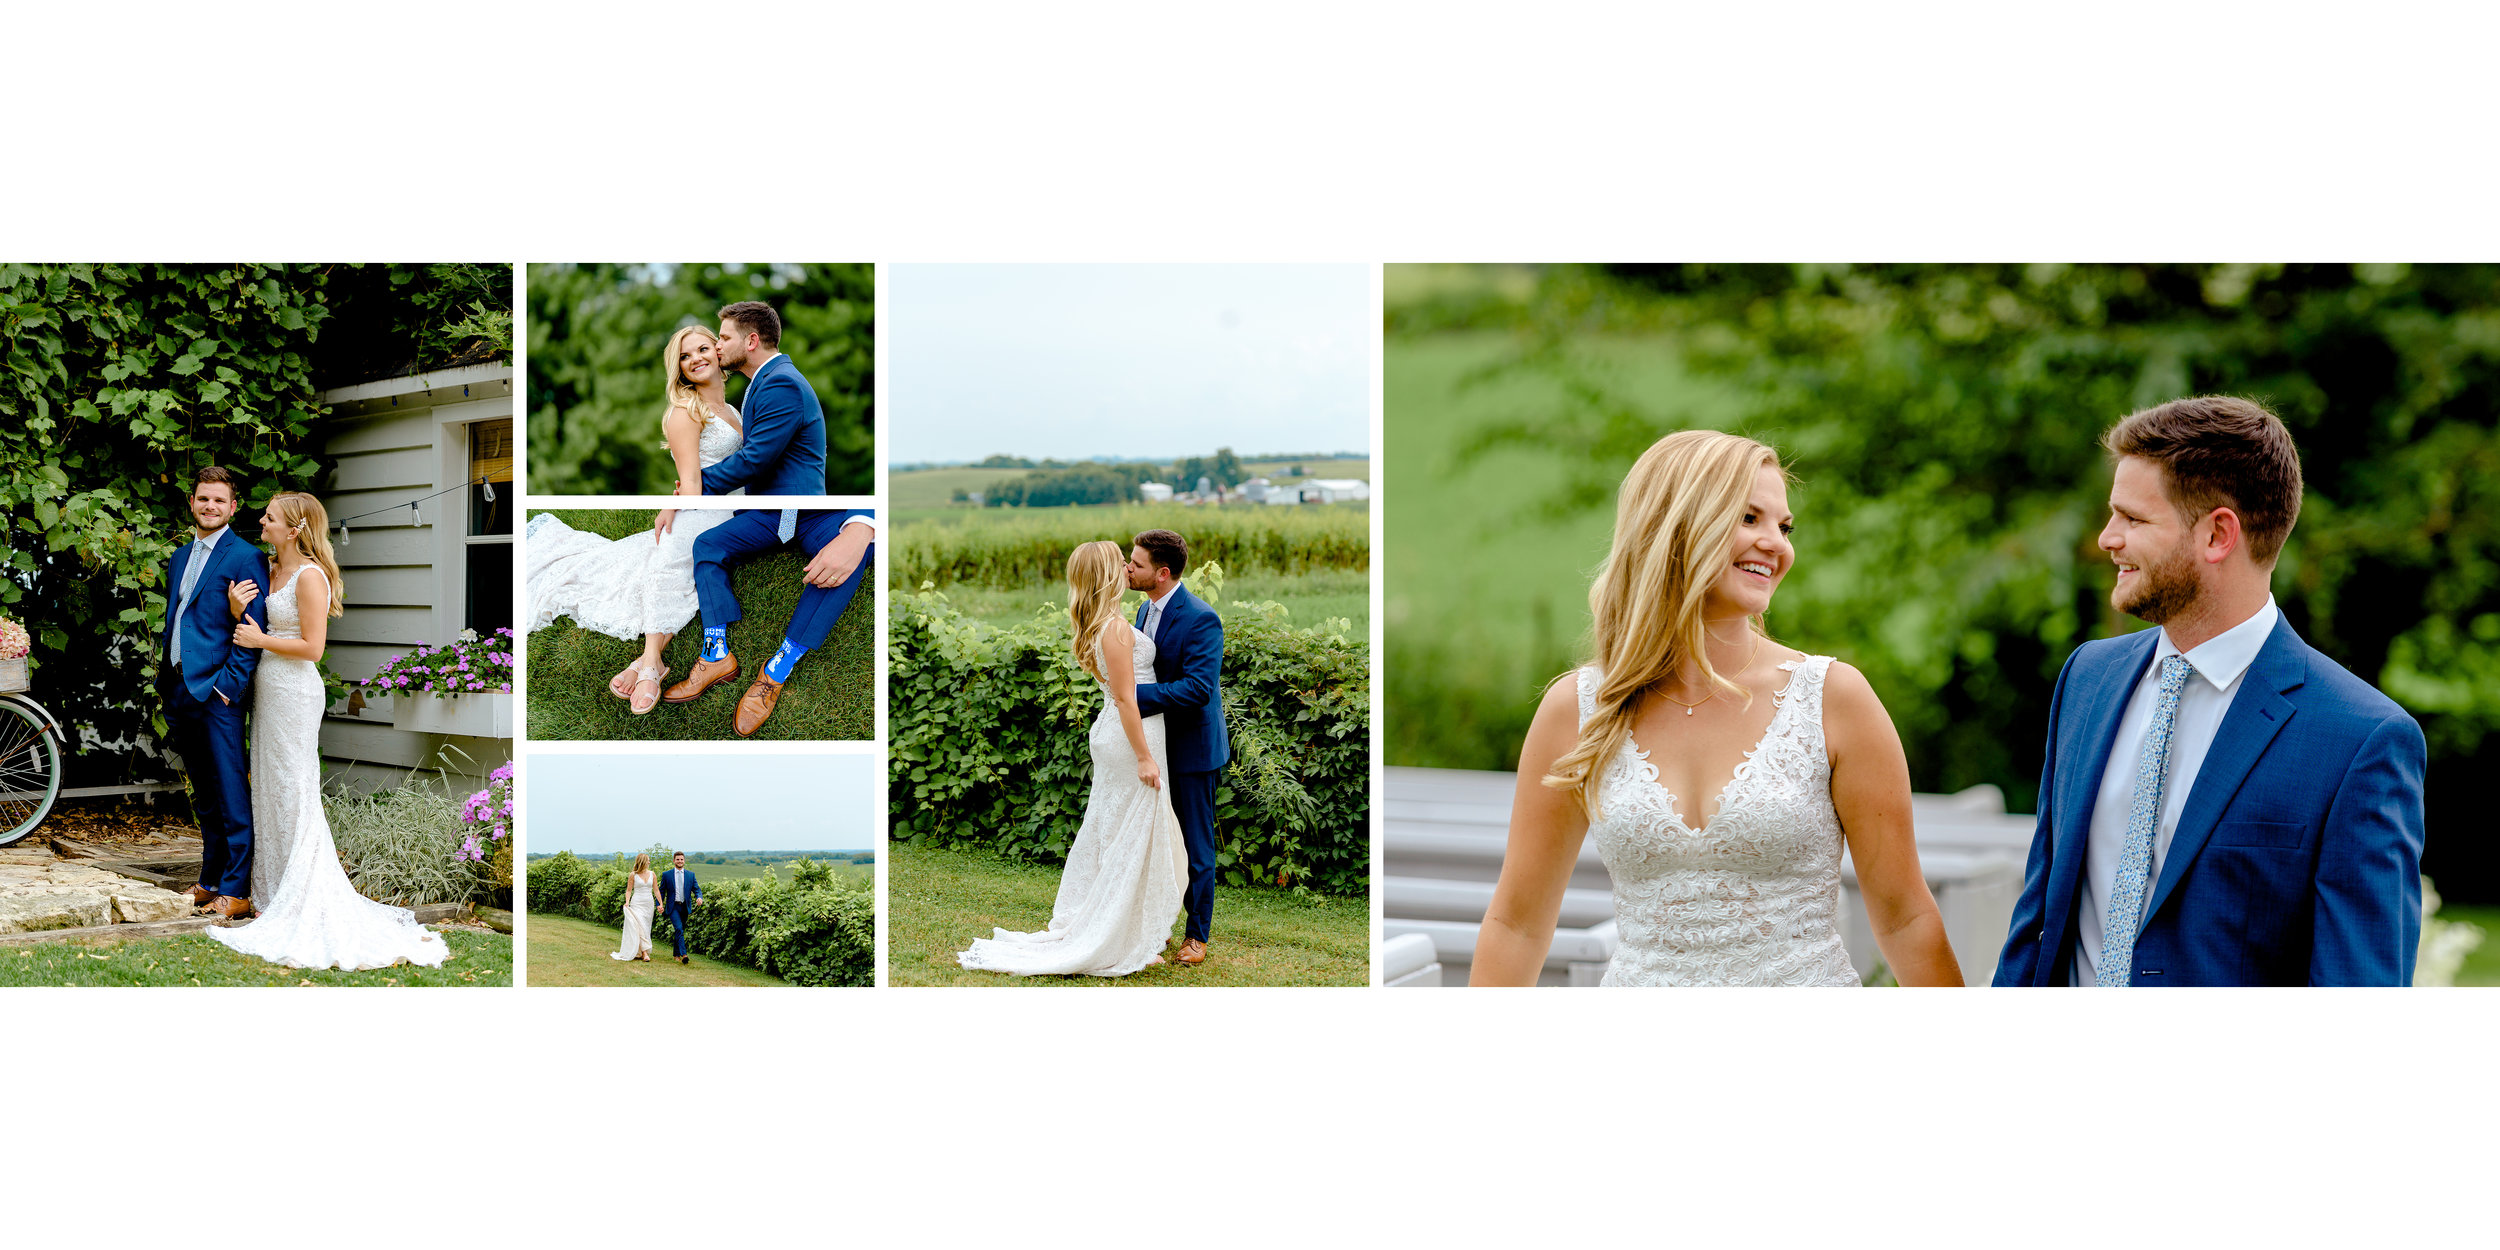 Ashley + Justin - Wedding Album_10.jpg